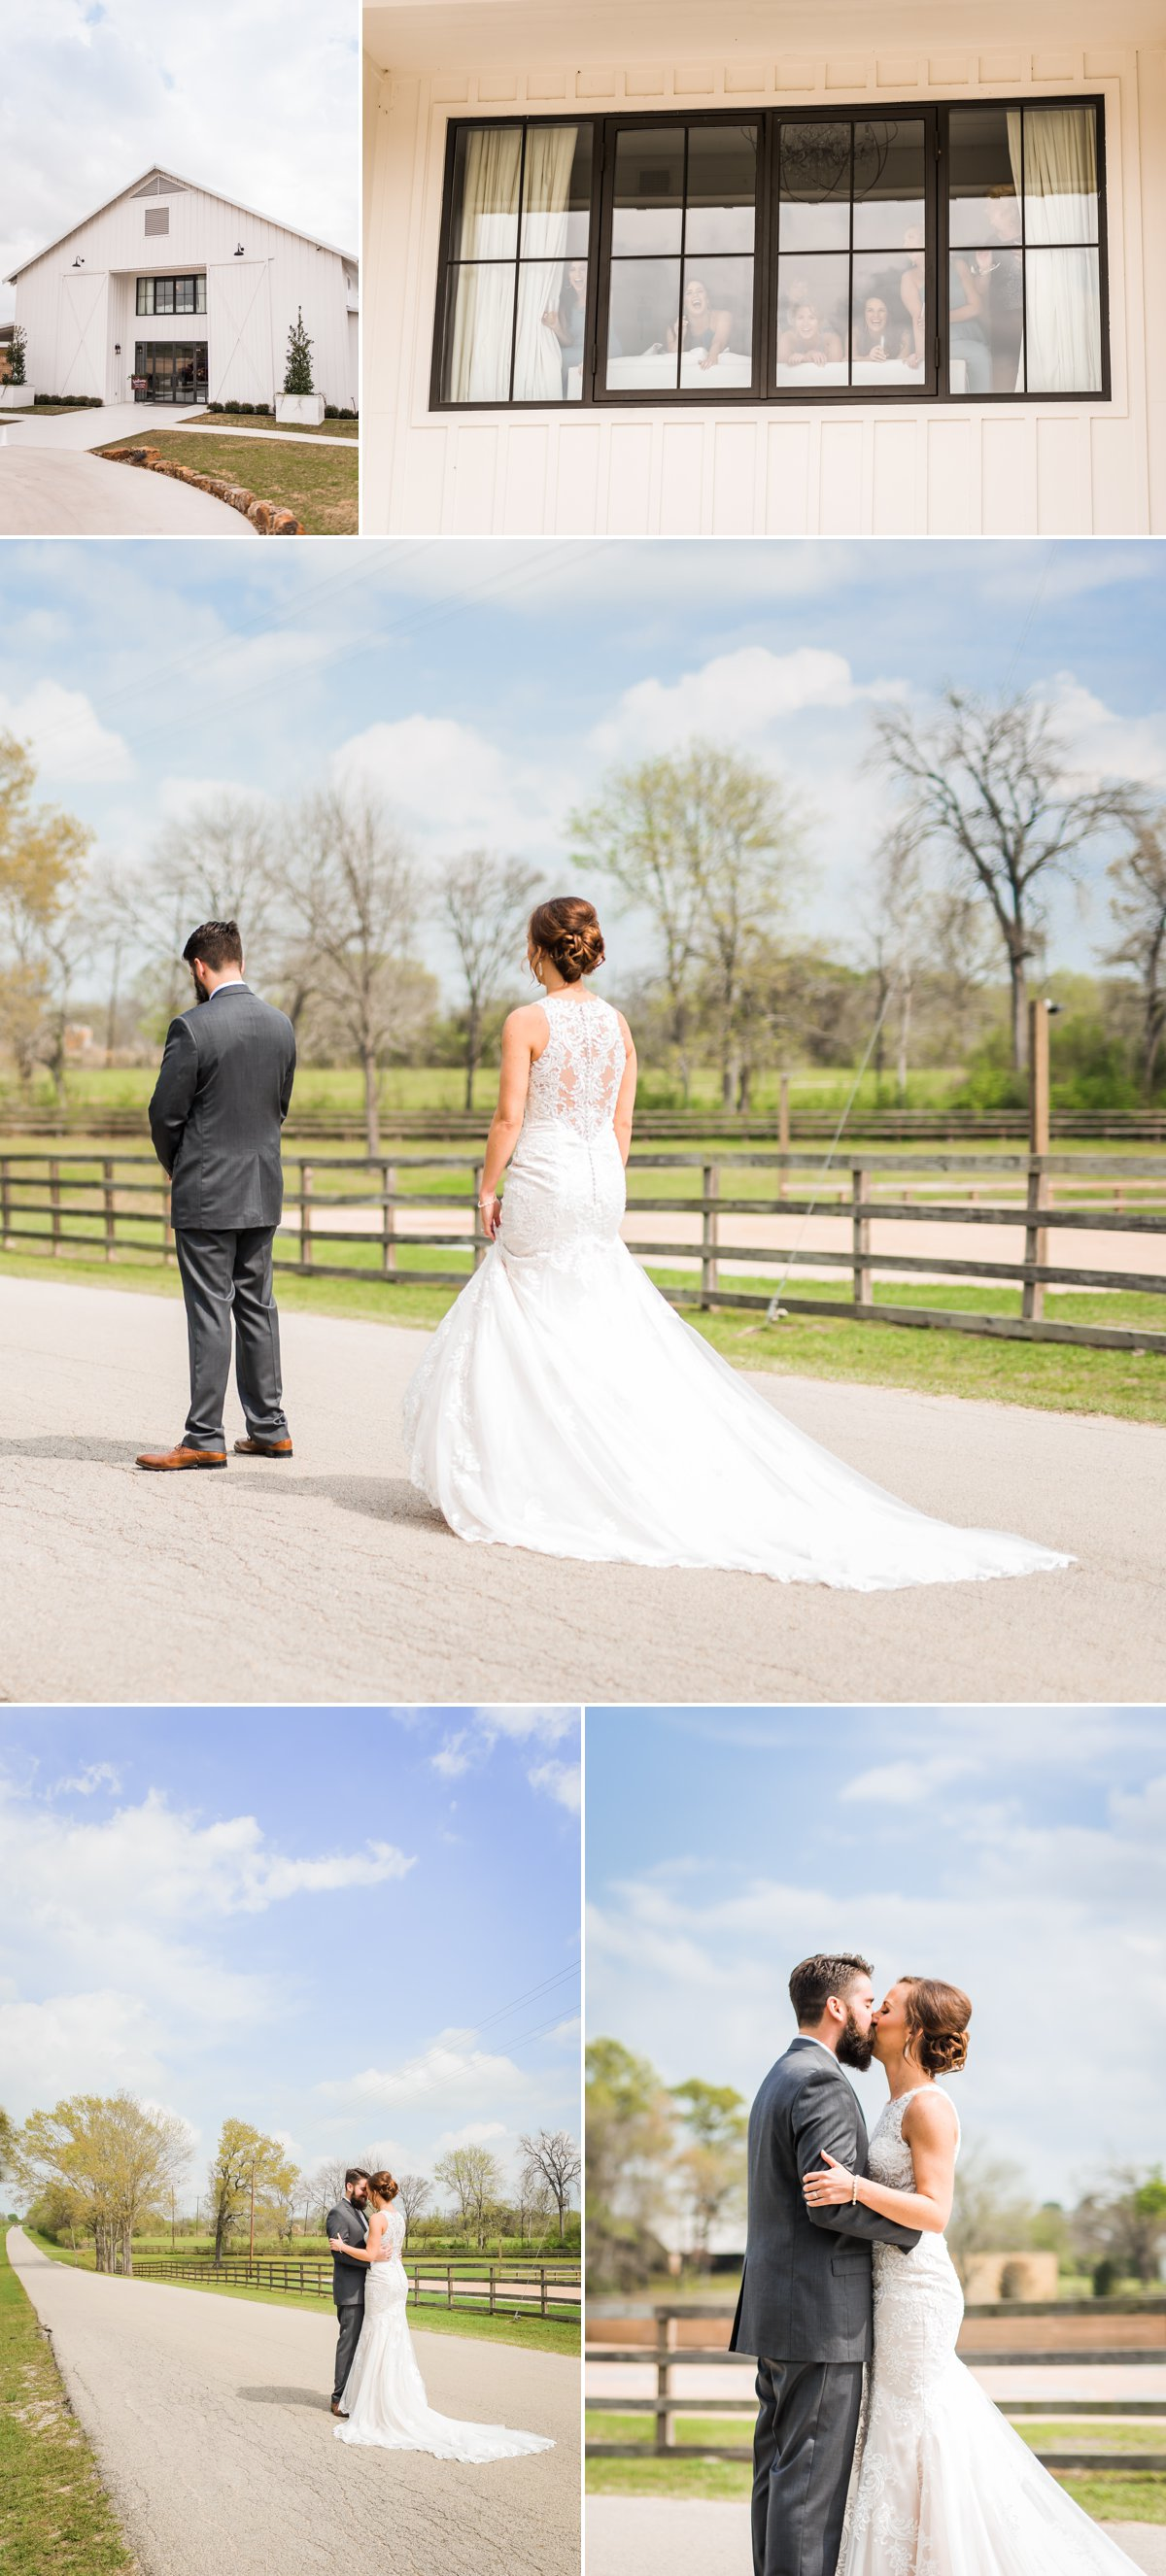 The Farmhouse Wedding Venue First Look by Nate Messarra Photography